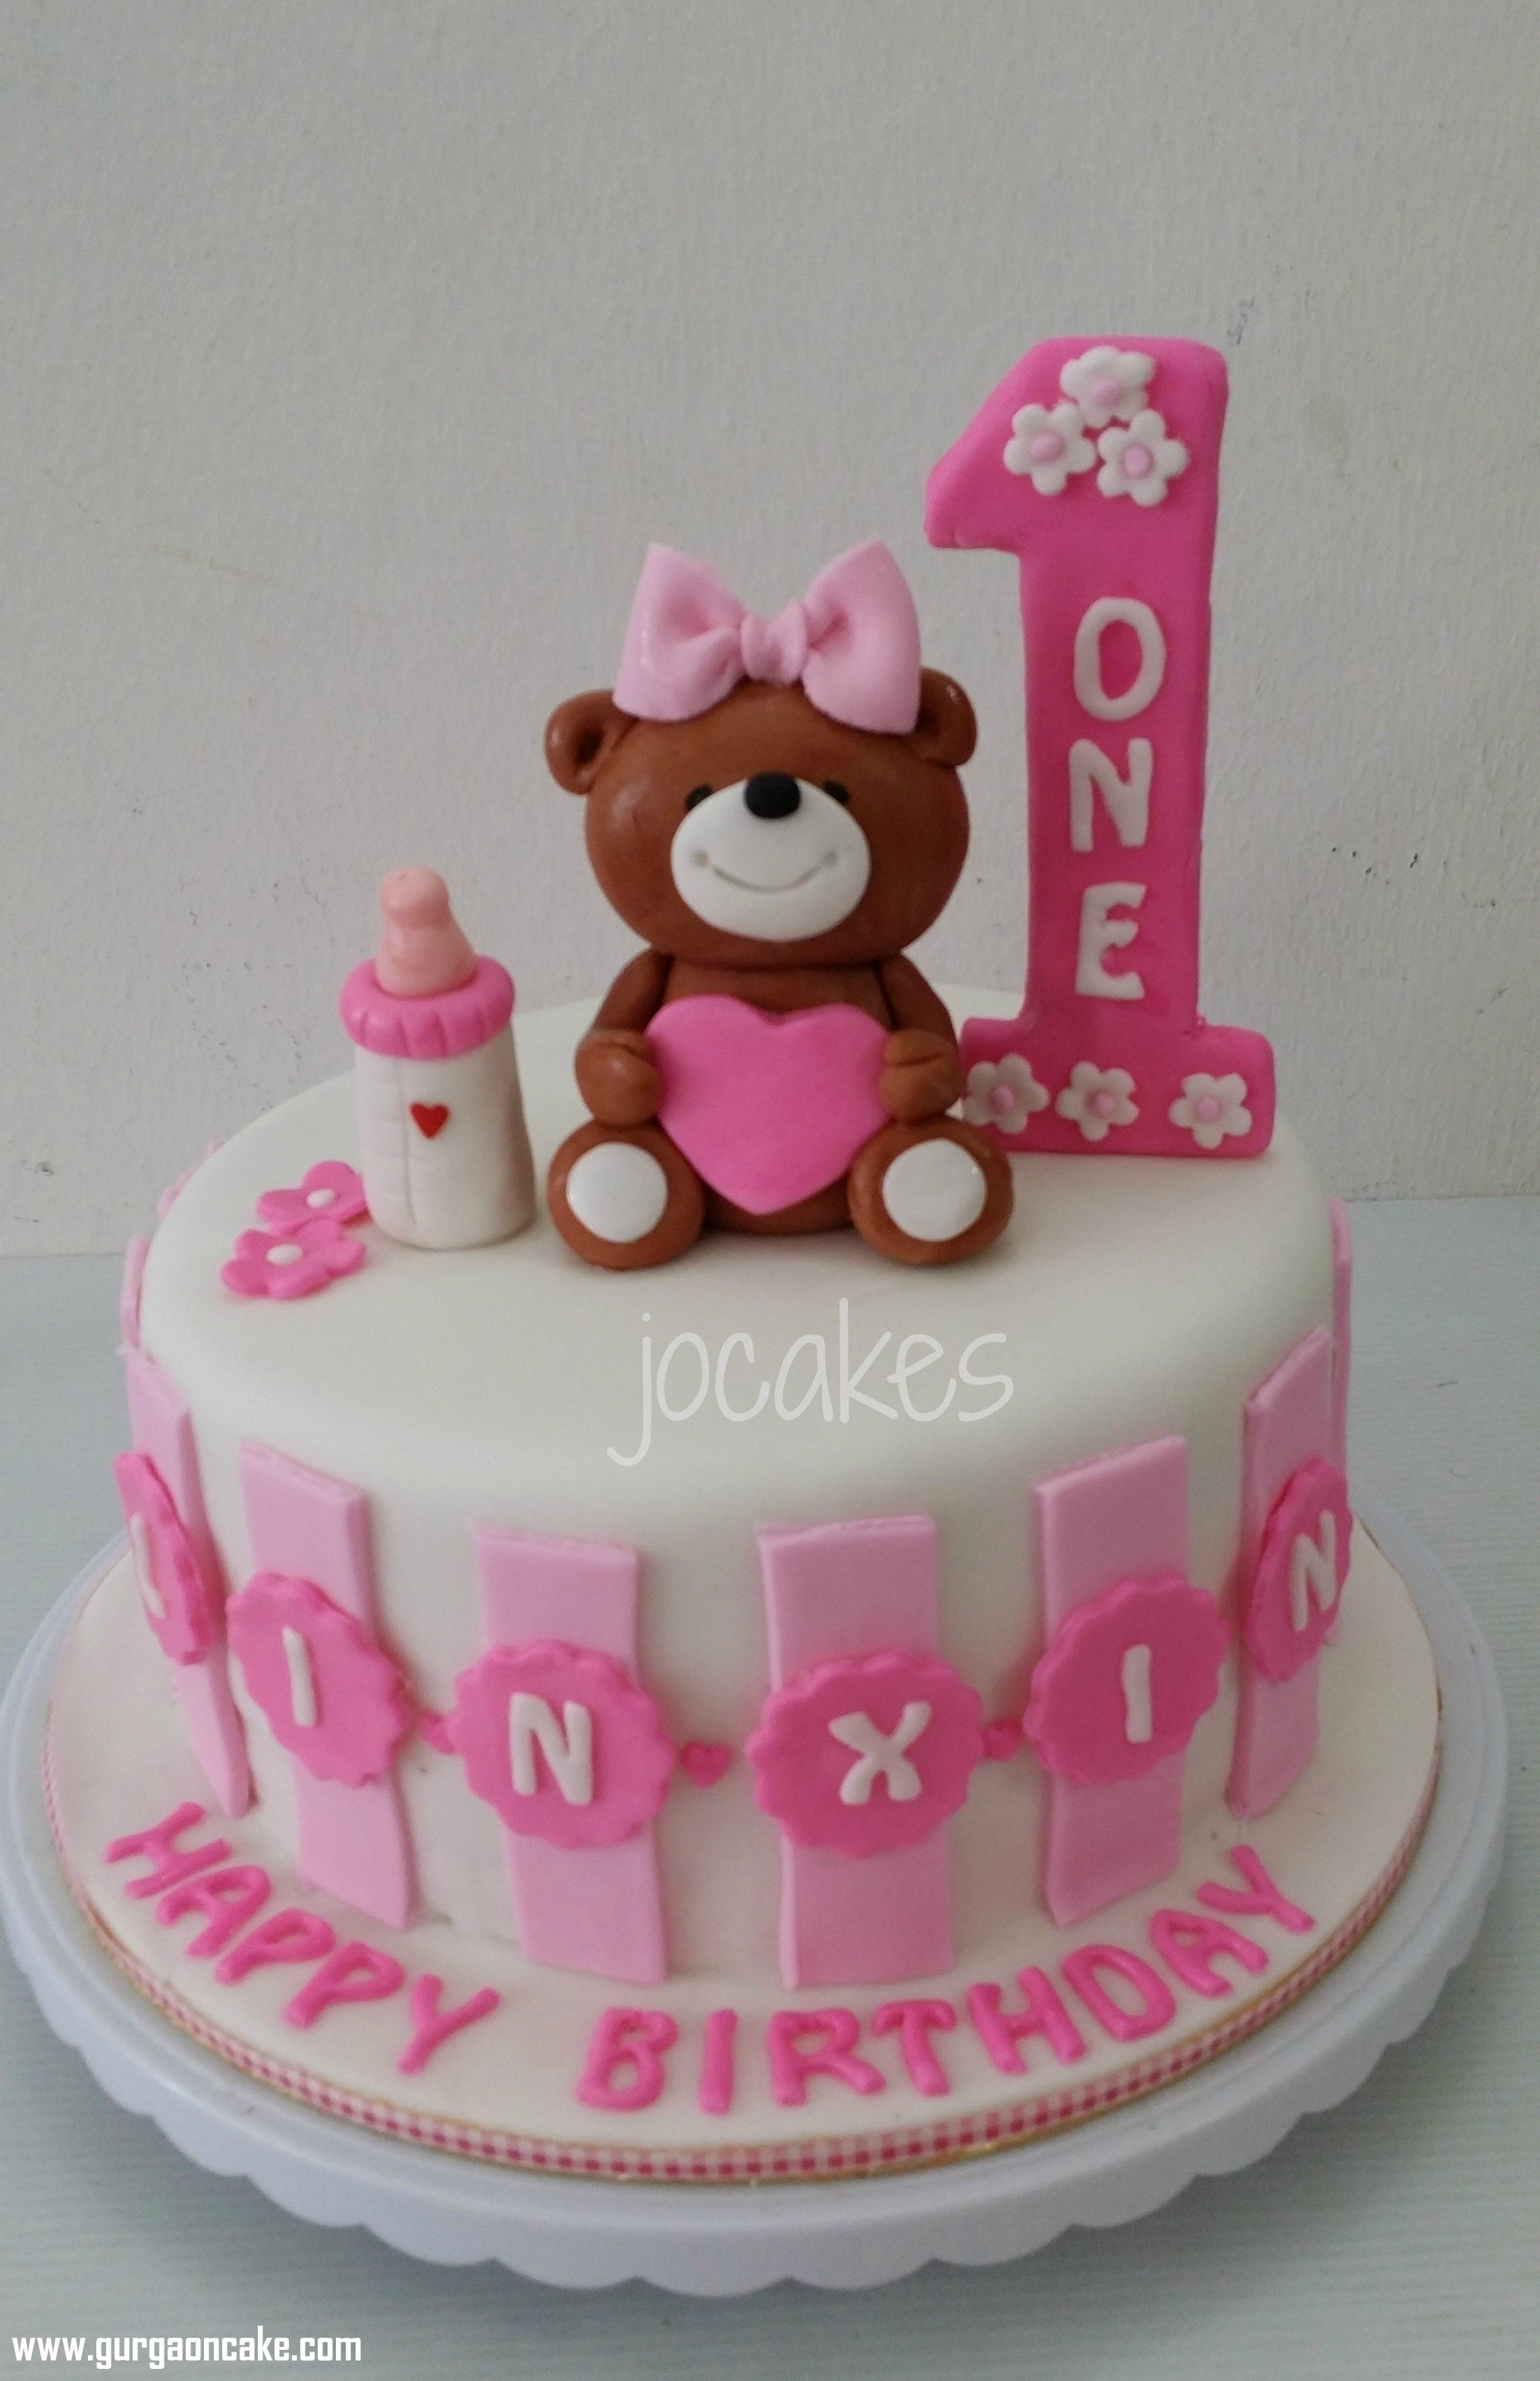 10 Famous 1 Year Old Birthday Cake Ideas